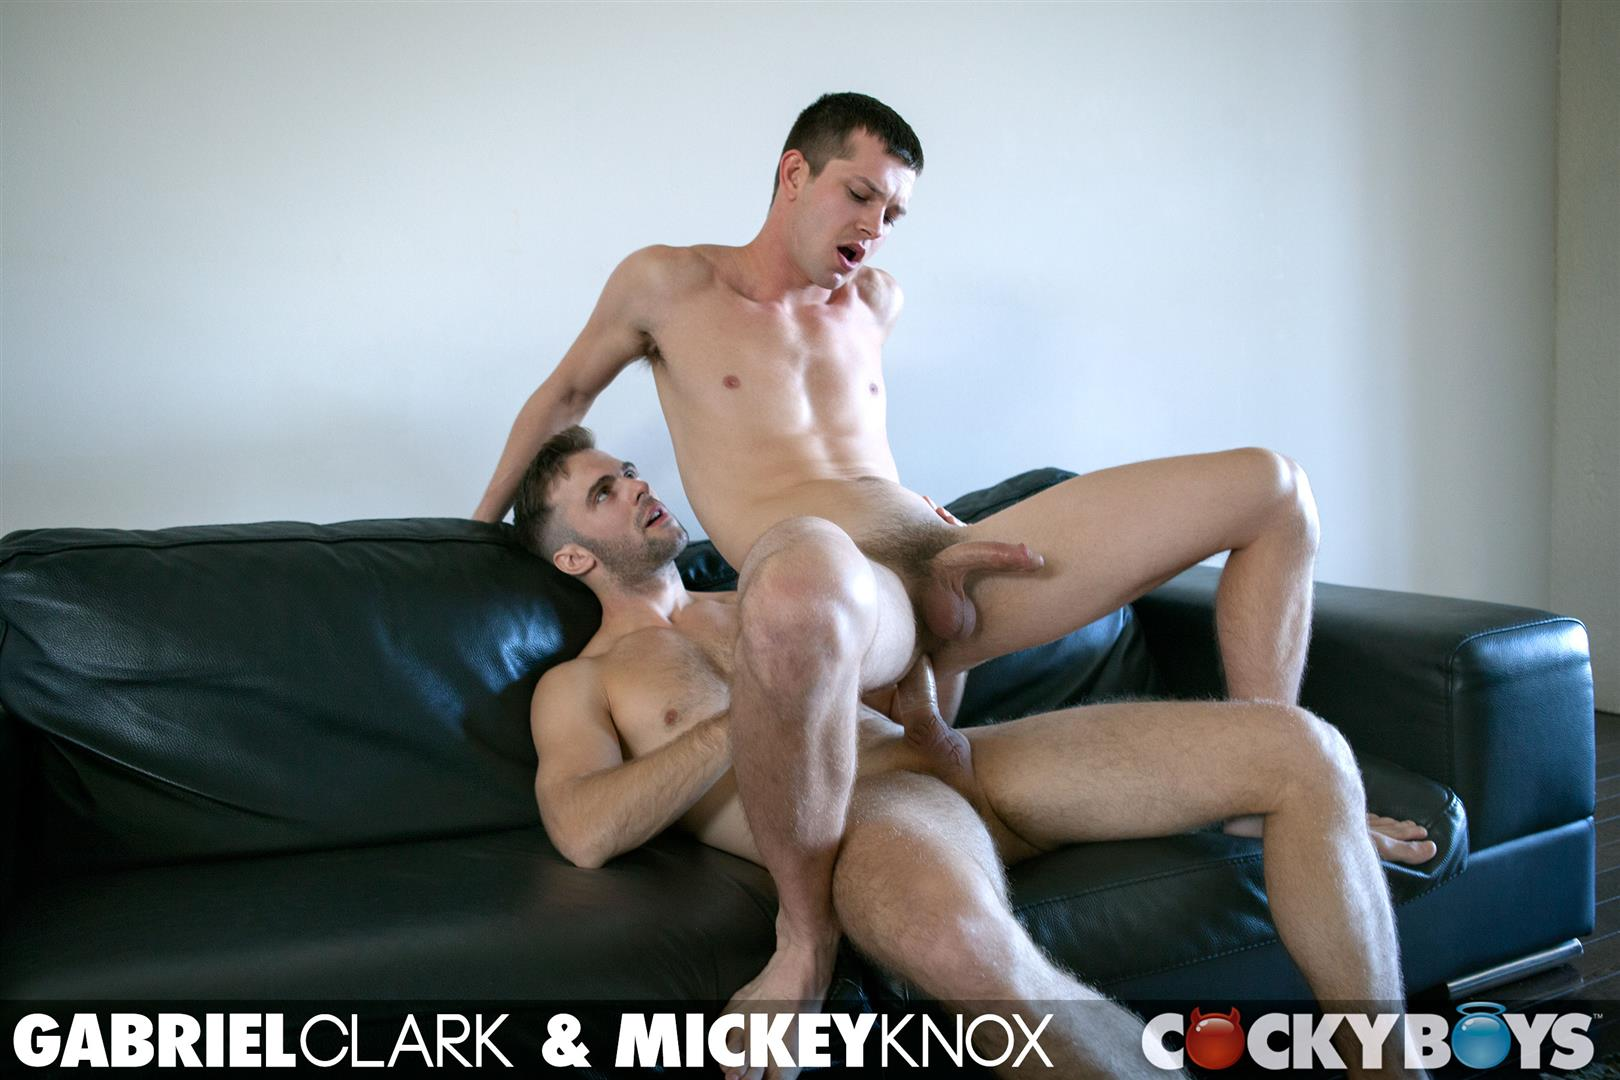 Cockyboys Mickey Knox and Gabriel Clark American Boys Thick Cocks Fucking Amateur Gay Porn 26 All American Boys Mickey Knox and Gabriel Clark Share A Fuck